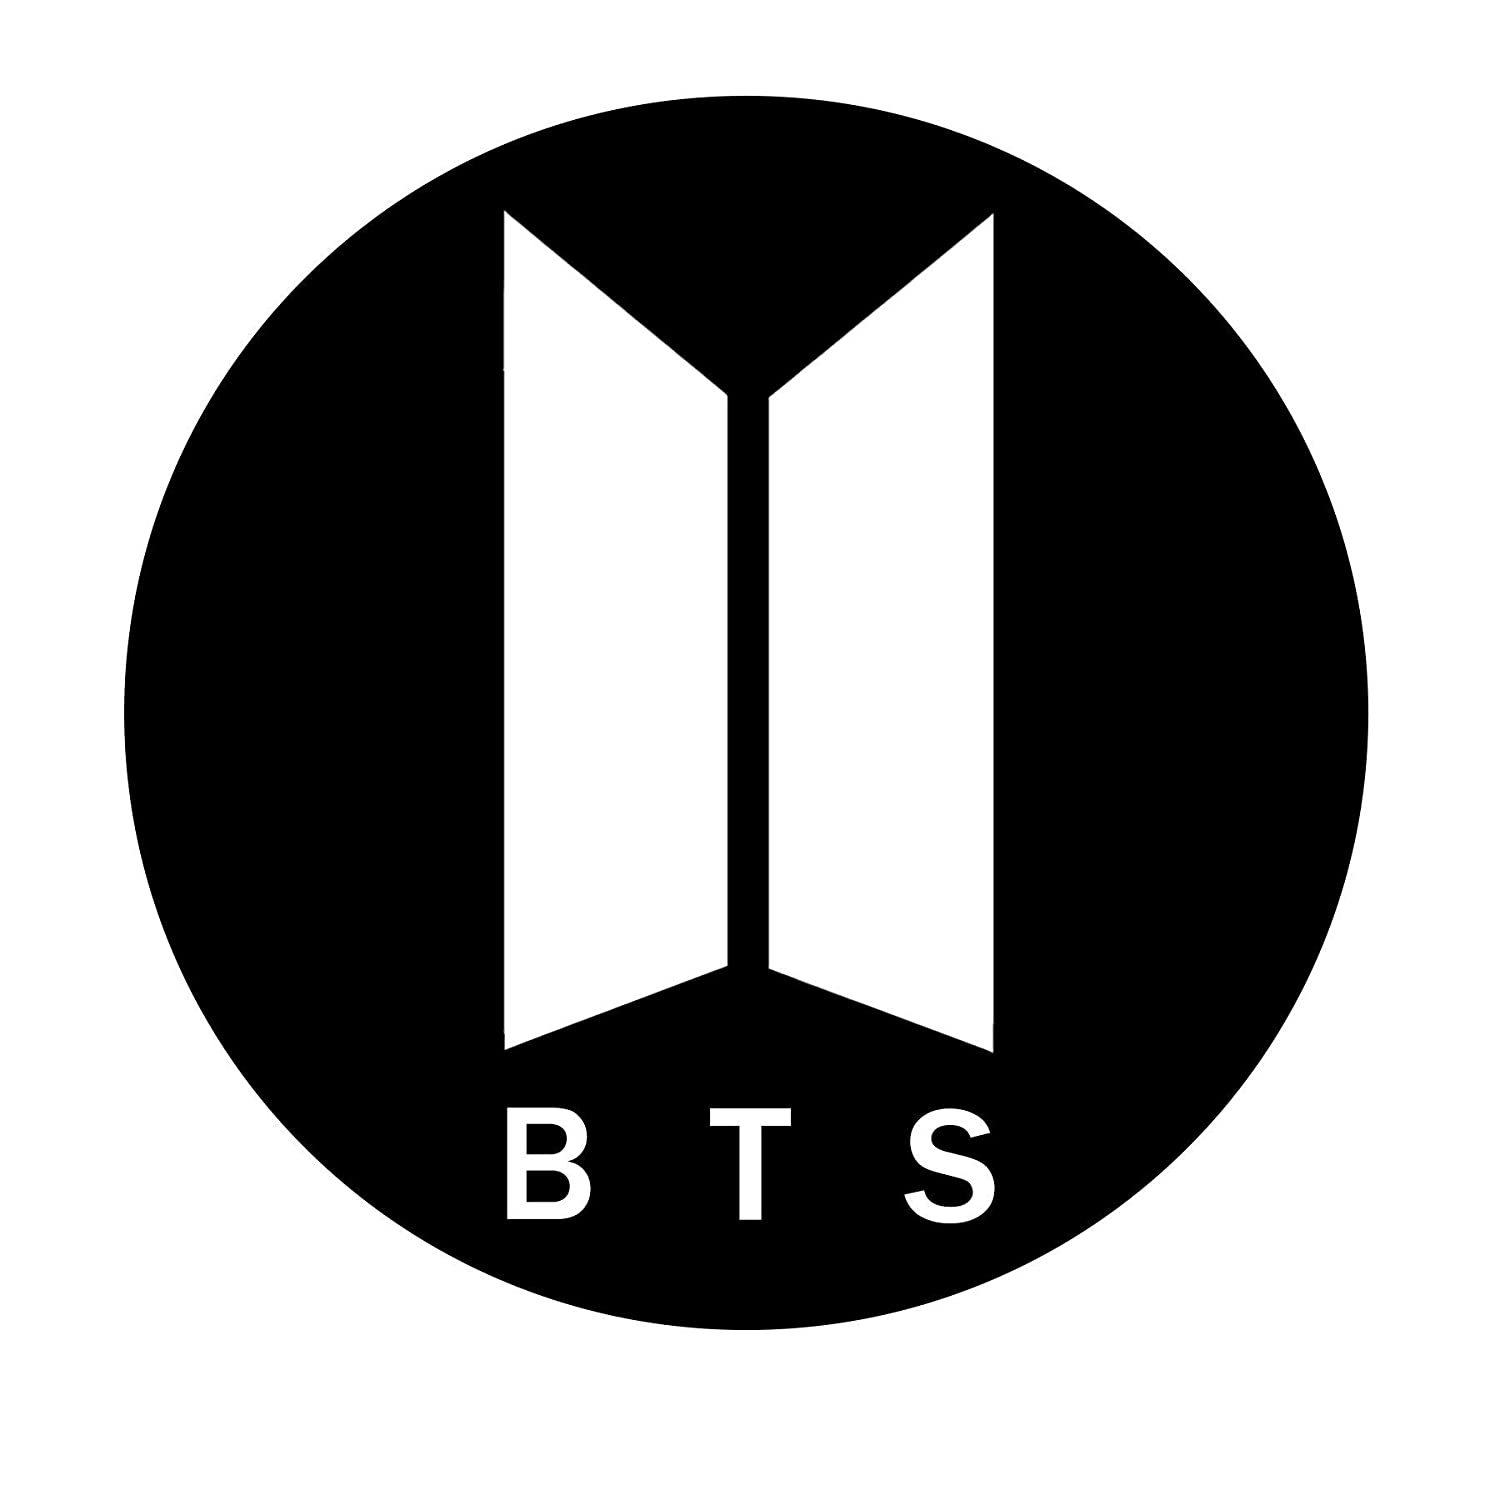 New BTS Symbol Worldwide K-Pop Decal Vinyl Sticker 4 x 4. Comes in different colors. Select from the option menu.